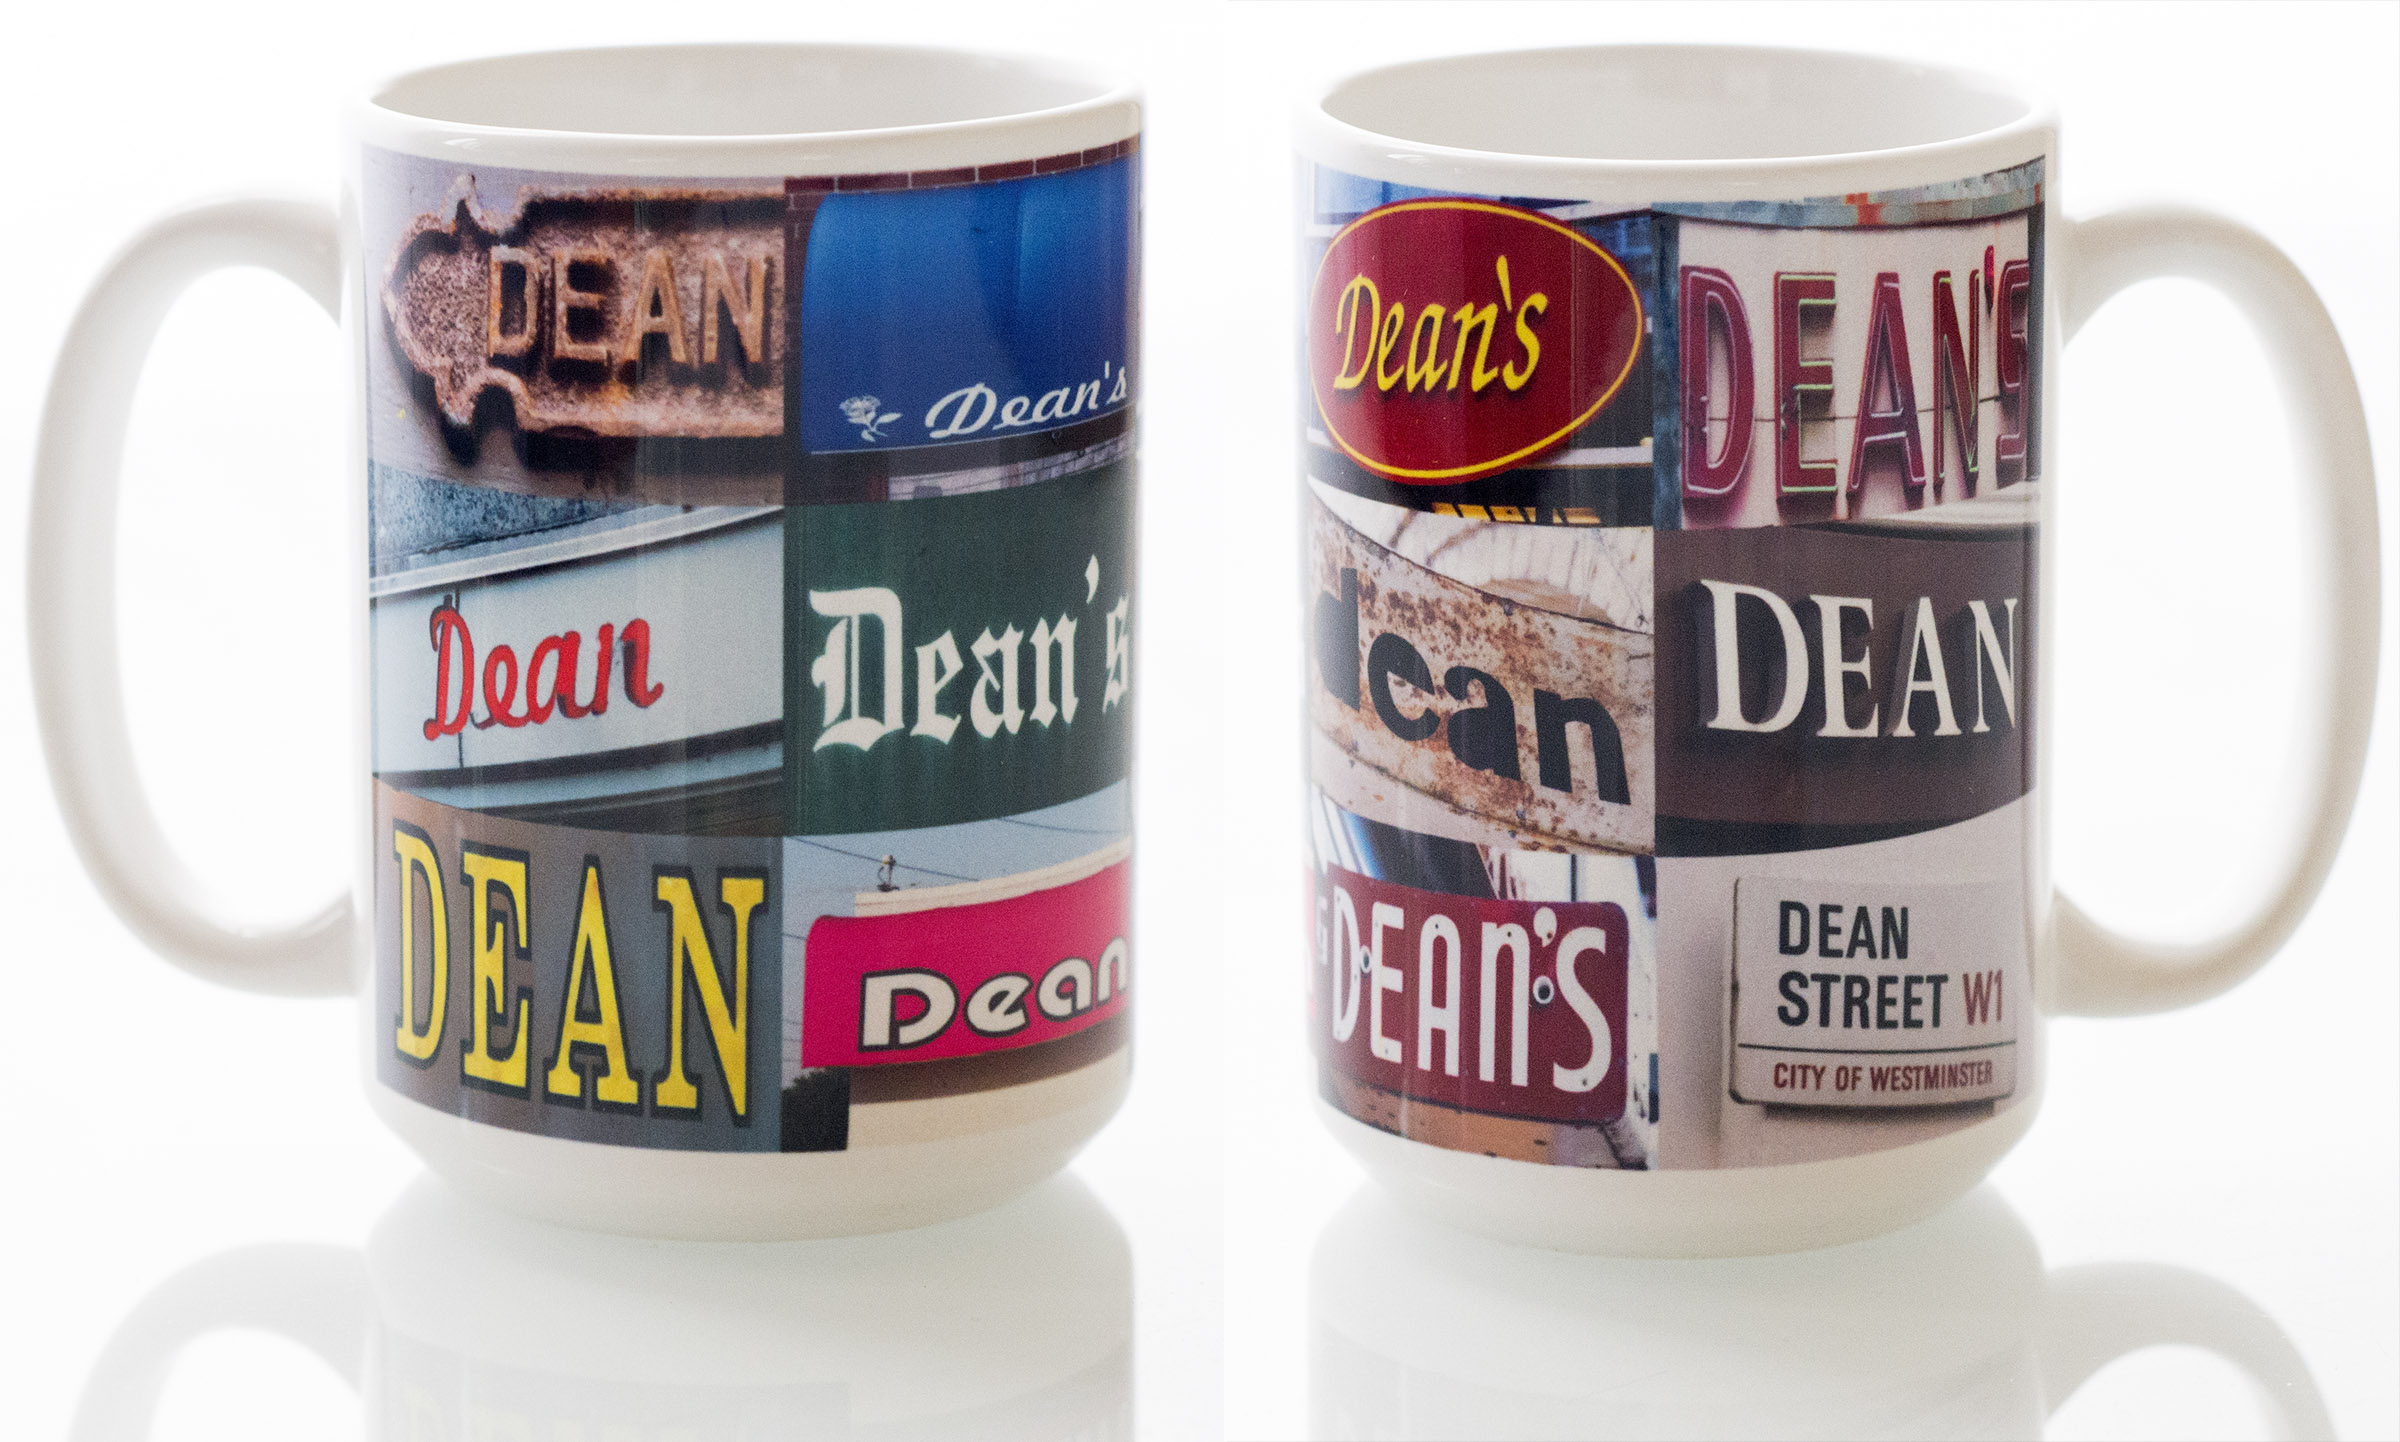 https://www.etsy.com/listing/218357494/personalized-coffee-mug-featuring-the?ref=shop_home_active_5&ga_search_query=dean